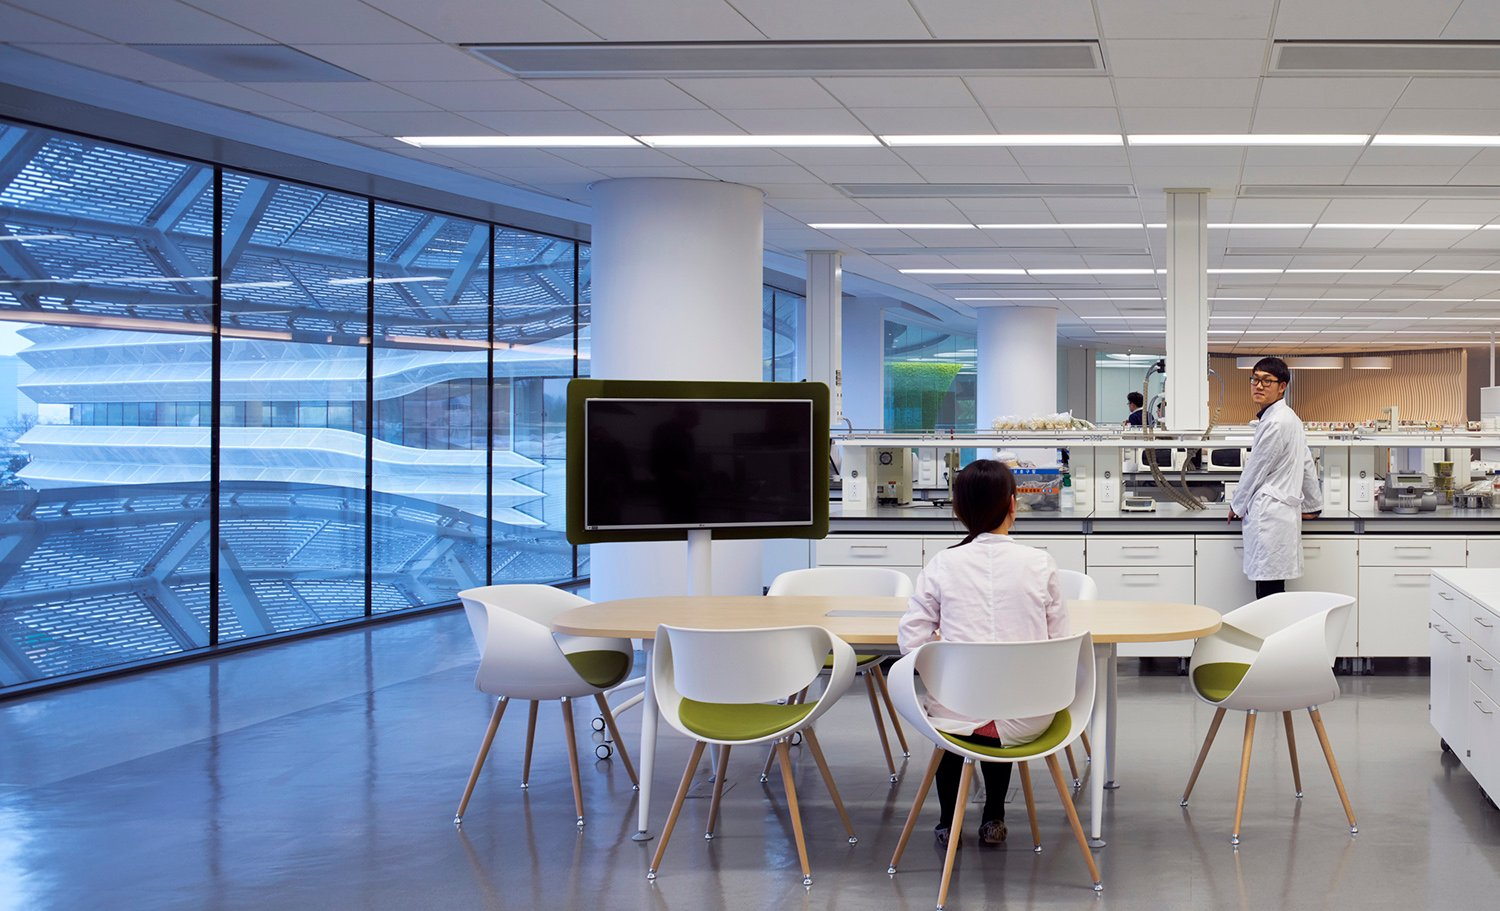 Collaborative lab space Christopher Barrett